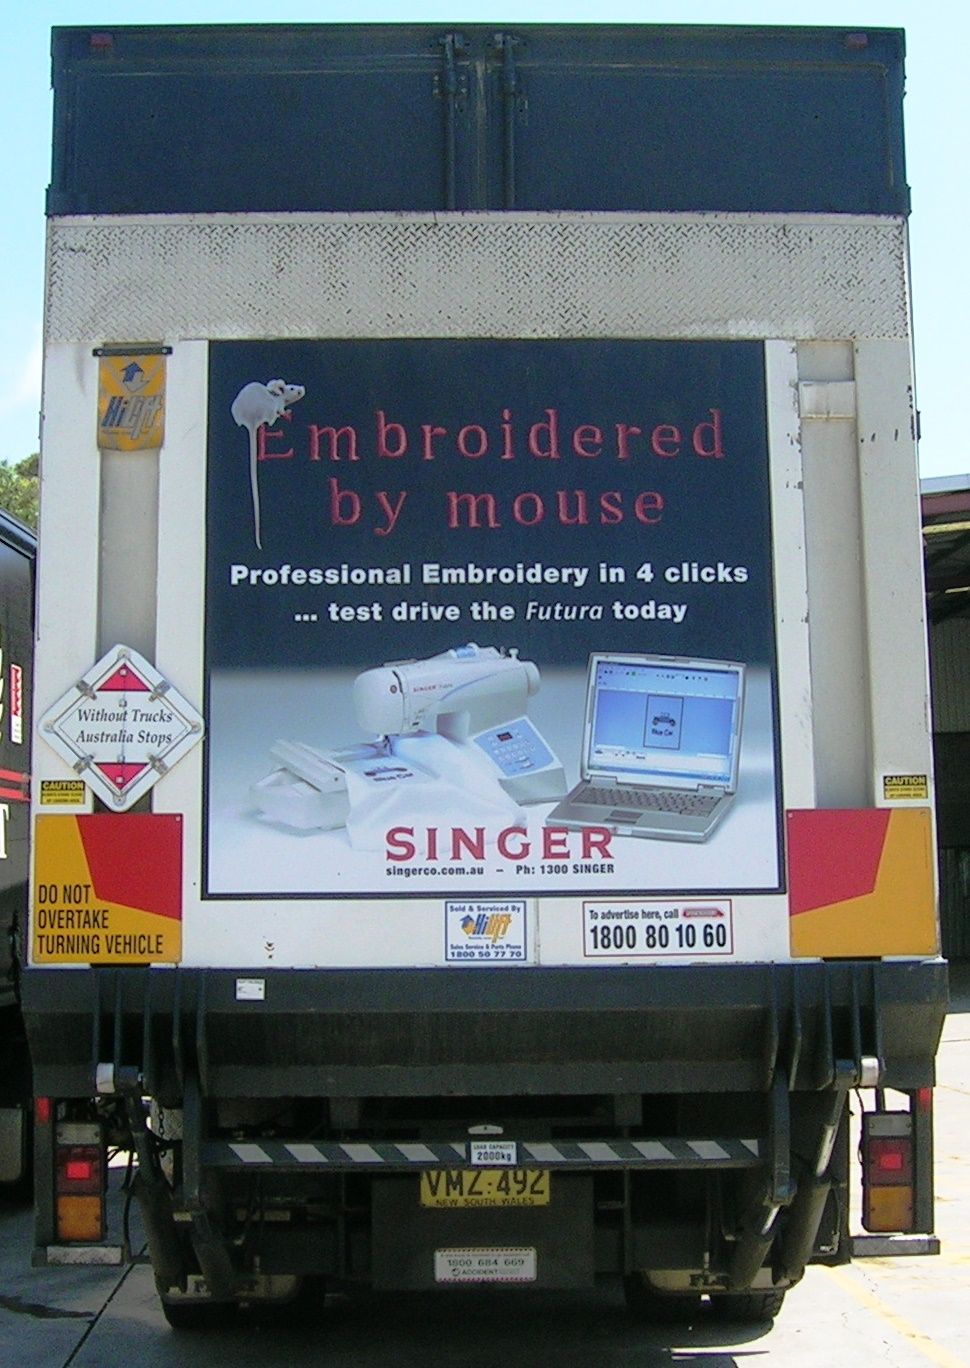 Truck advertising. TruckBack. Singer Sewing Machines. Embroidered by mouse campaign. First Fleet Rigid. Tailgate.